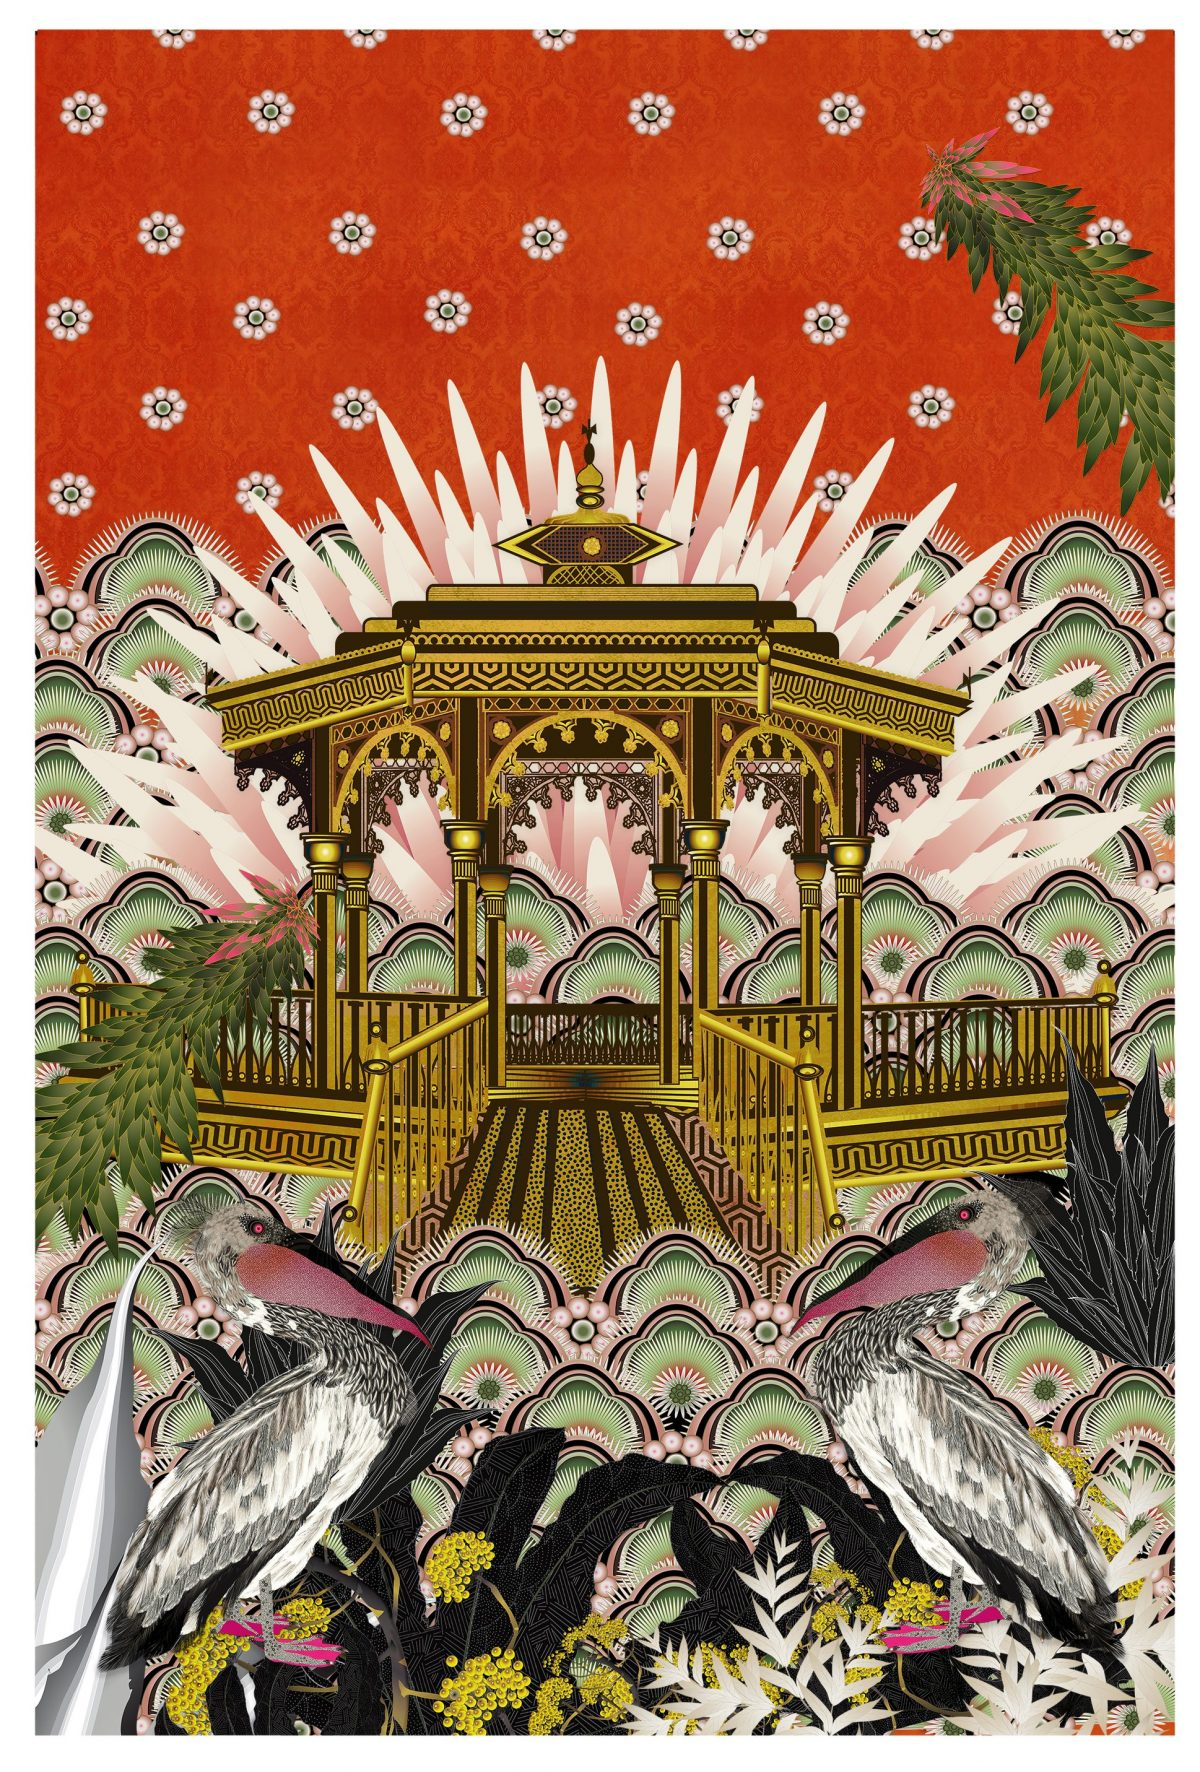 Pelicans-and-Bandstand-By-Sarah-Arnett